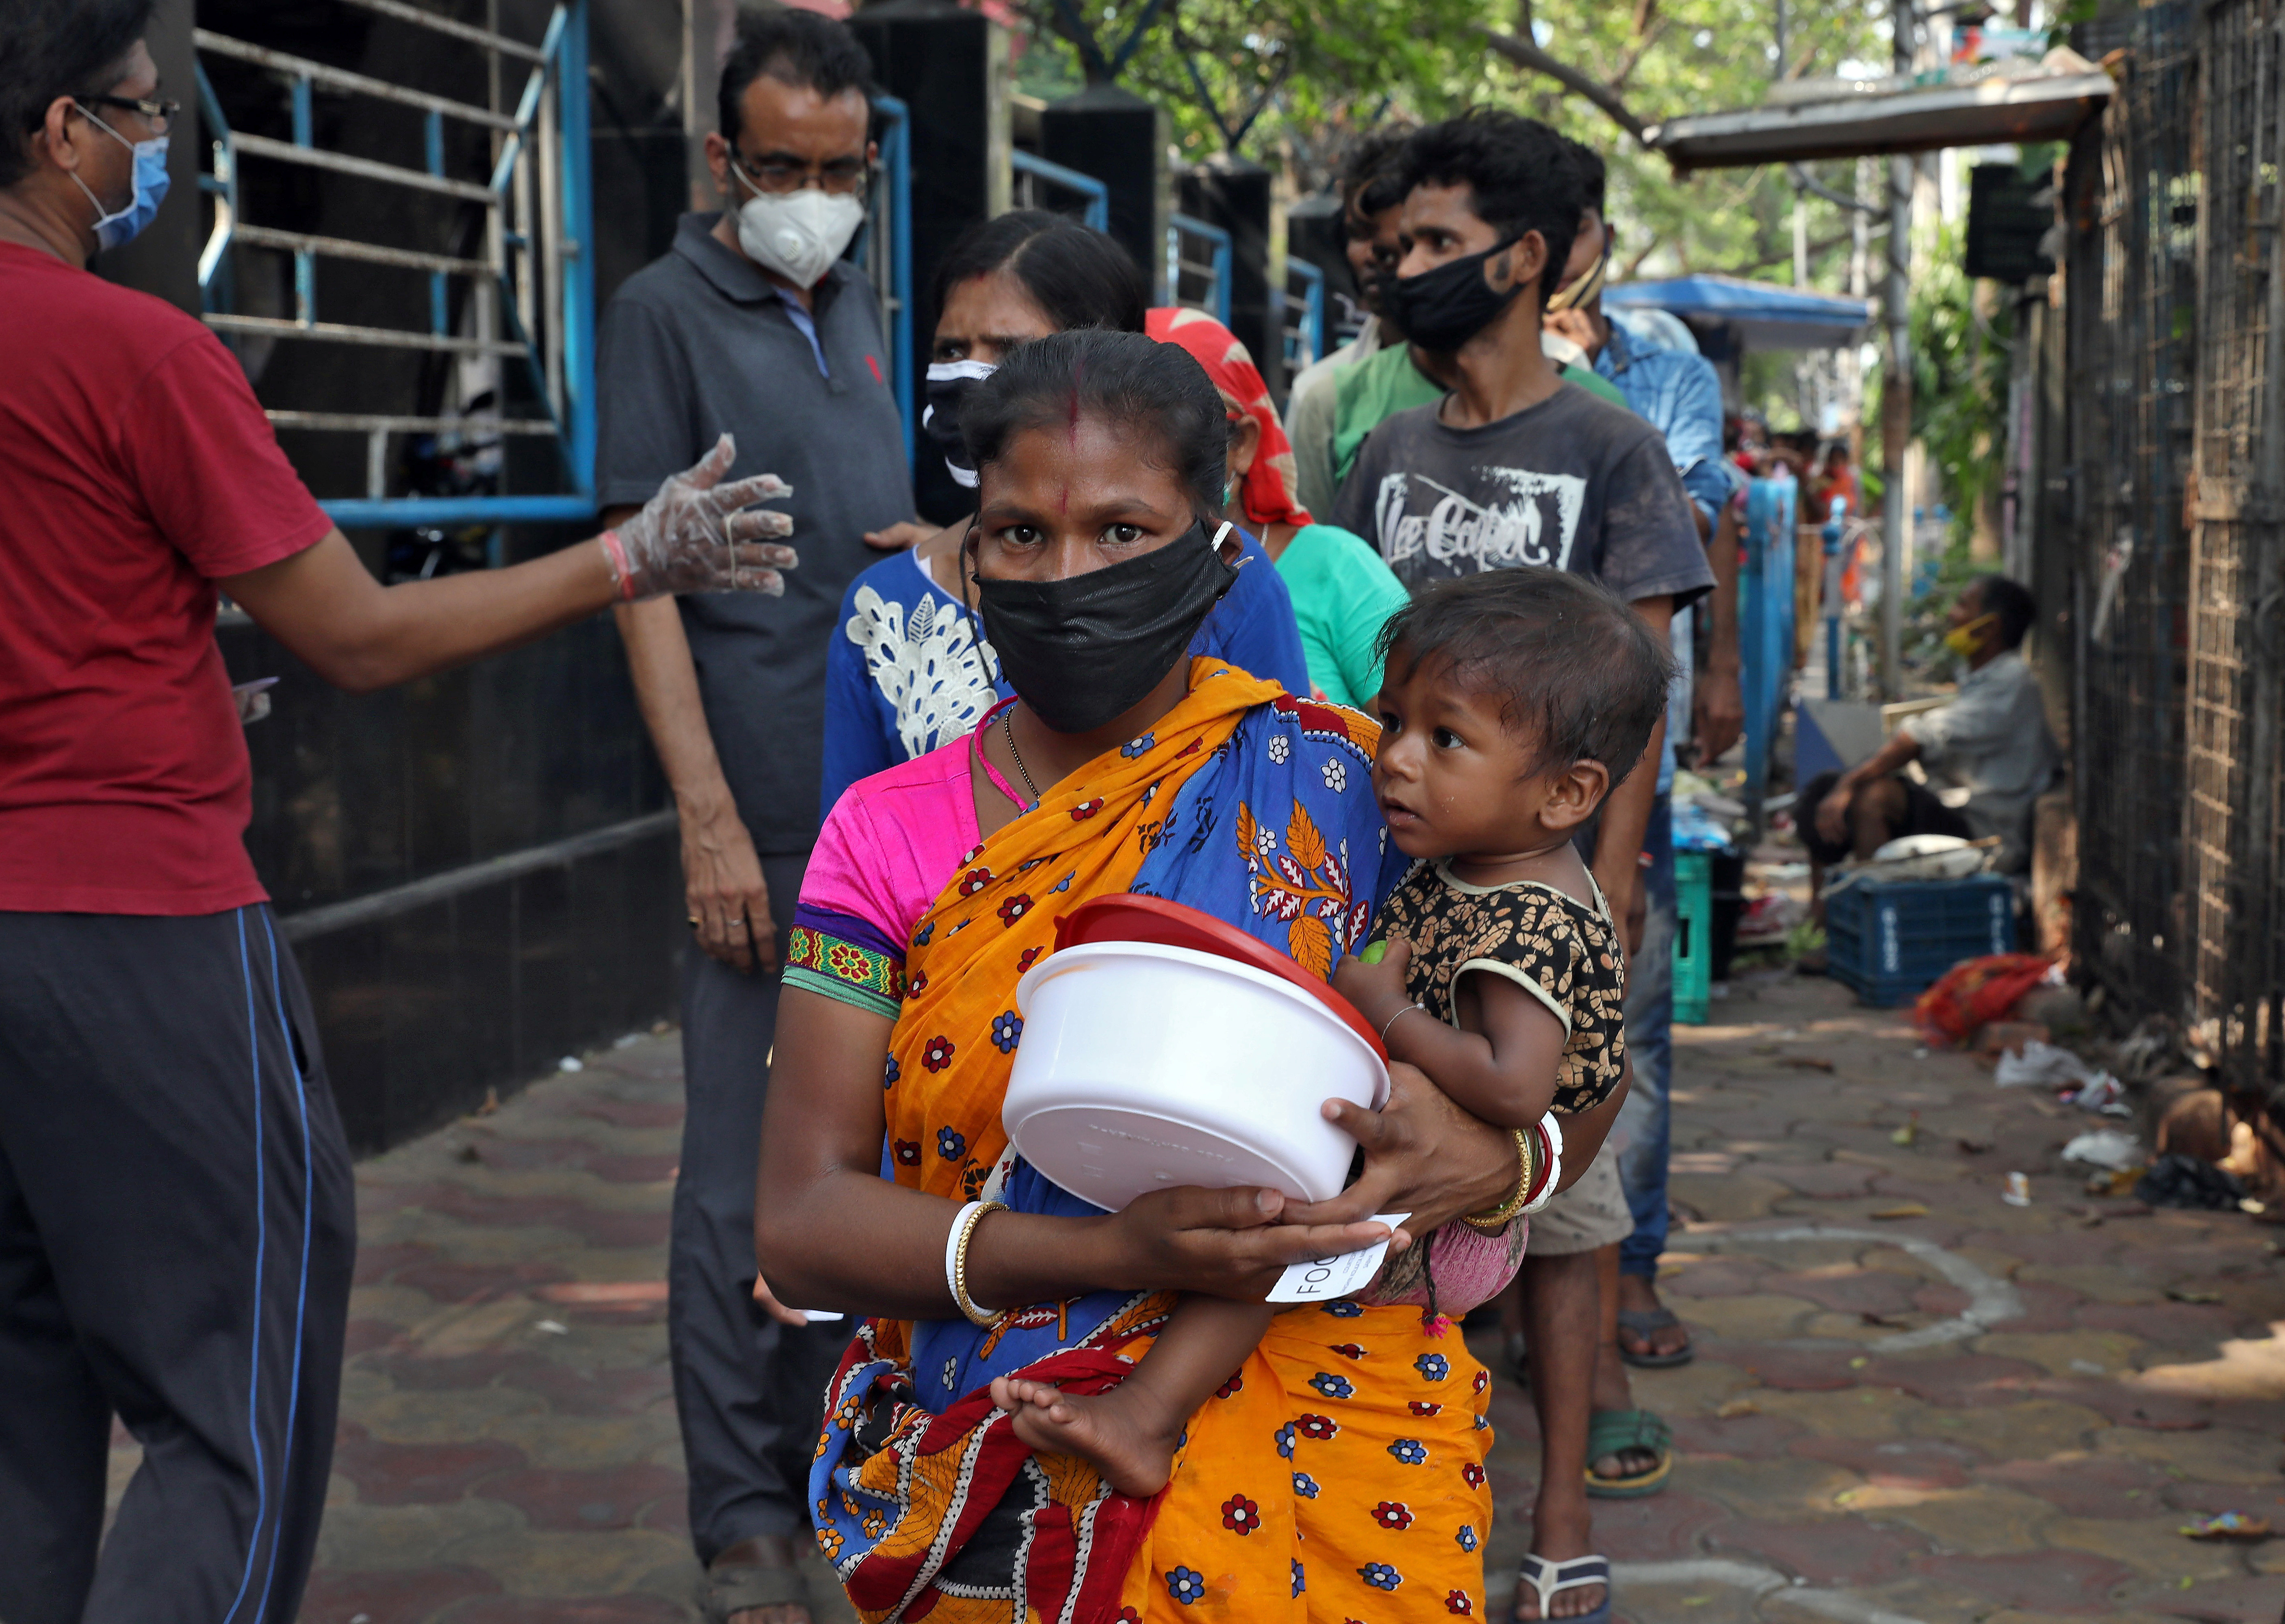 A homeless woman holding a child waits to receive food during a 21-day nationwide lockdown to slow the spreading of the coronavirus disease (COVID-19) in Kolkata, India, April 3, 2020. REUTERS/Rupak De Chowdhuri - RC2YWF9E1LI6